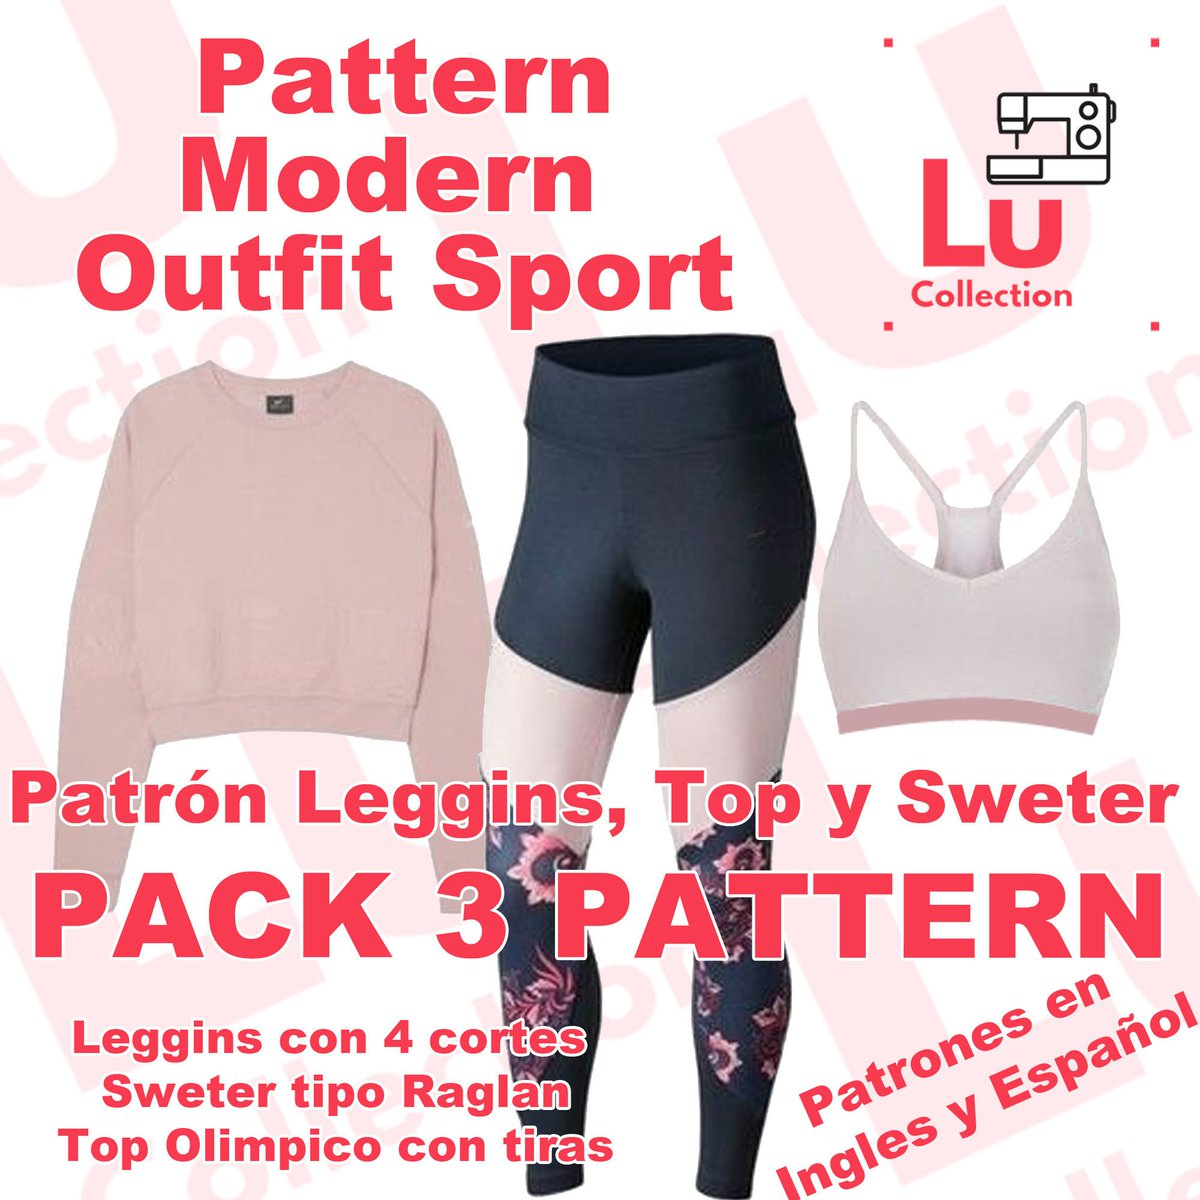 Visit our page in #etsy Pack 3 pattern leggins + bra + sweter #sewingpatterns #sewing #activewear #sportingchamps #outfitoftheday #diy #handmade #craft #gymgirl #yoga